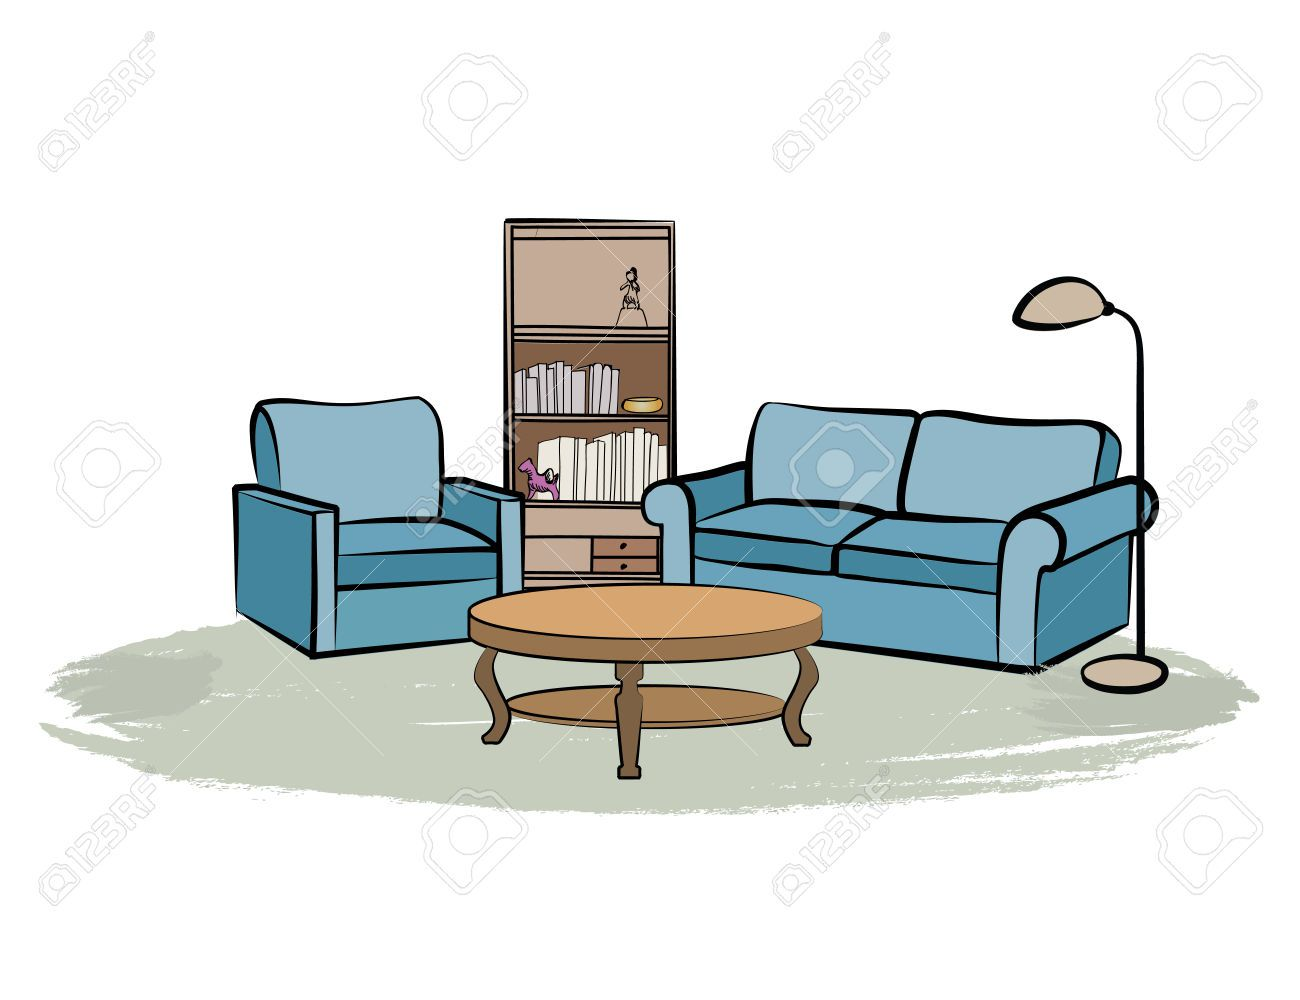 Living Room Clipart At GetDrawings.com